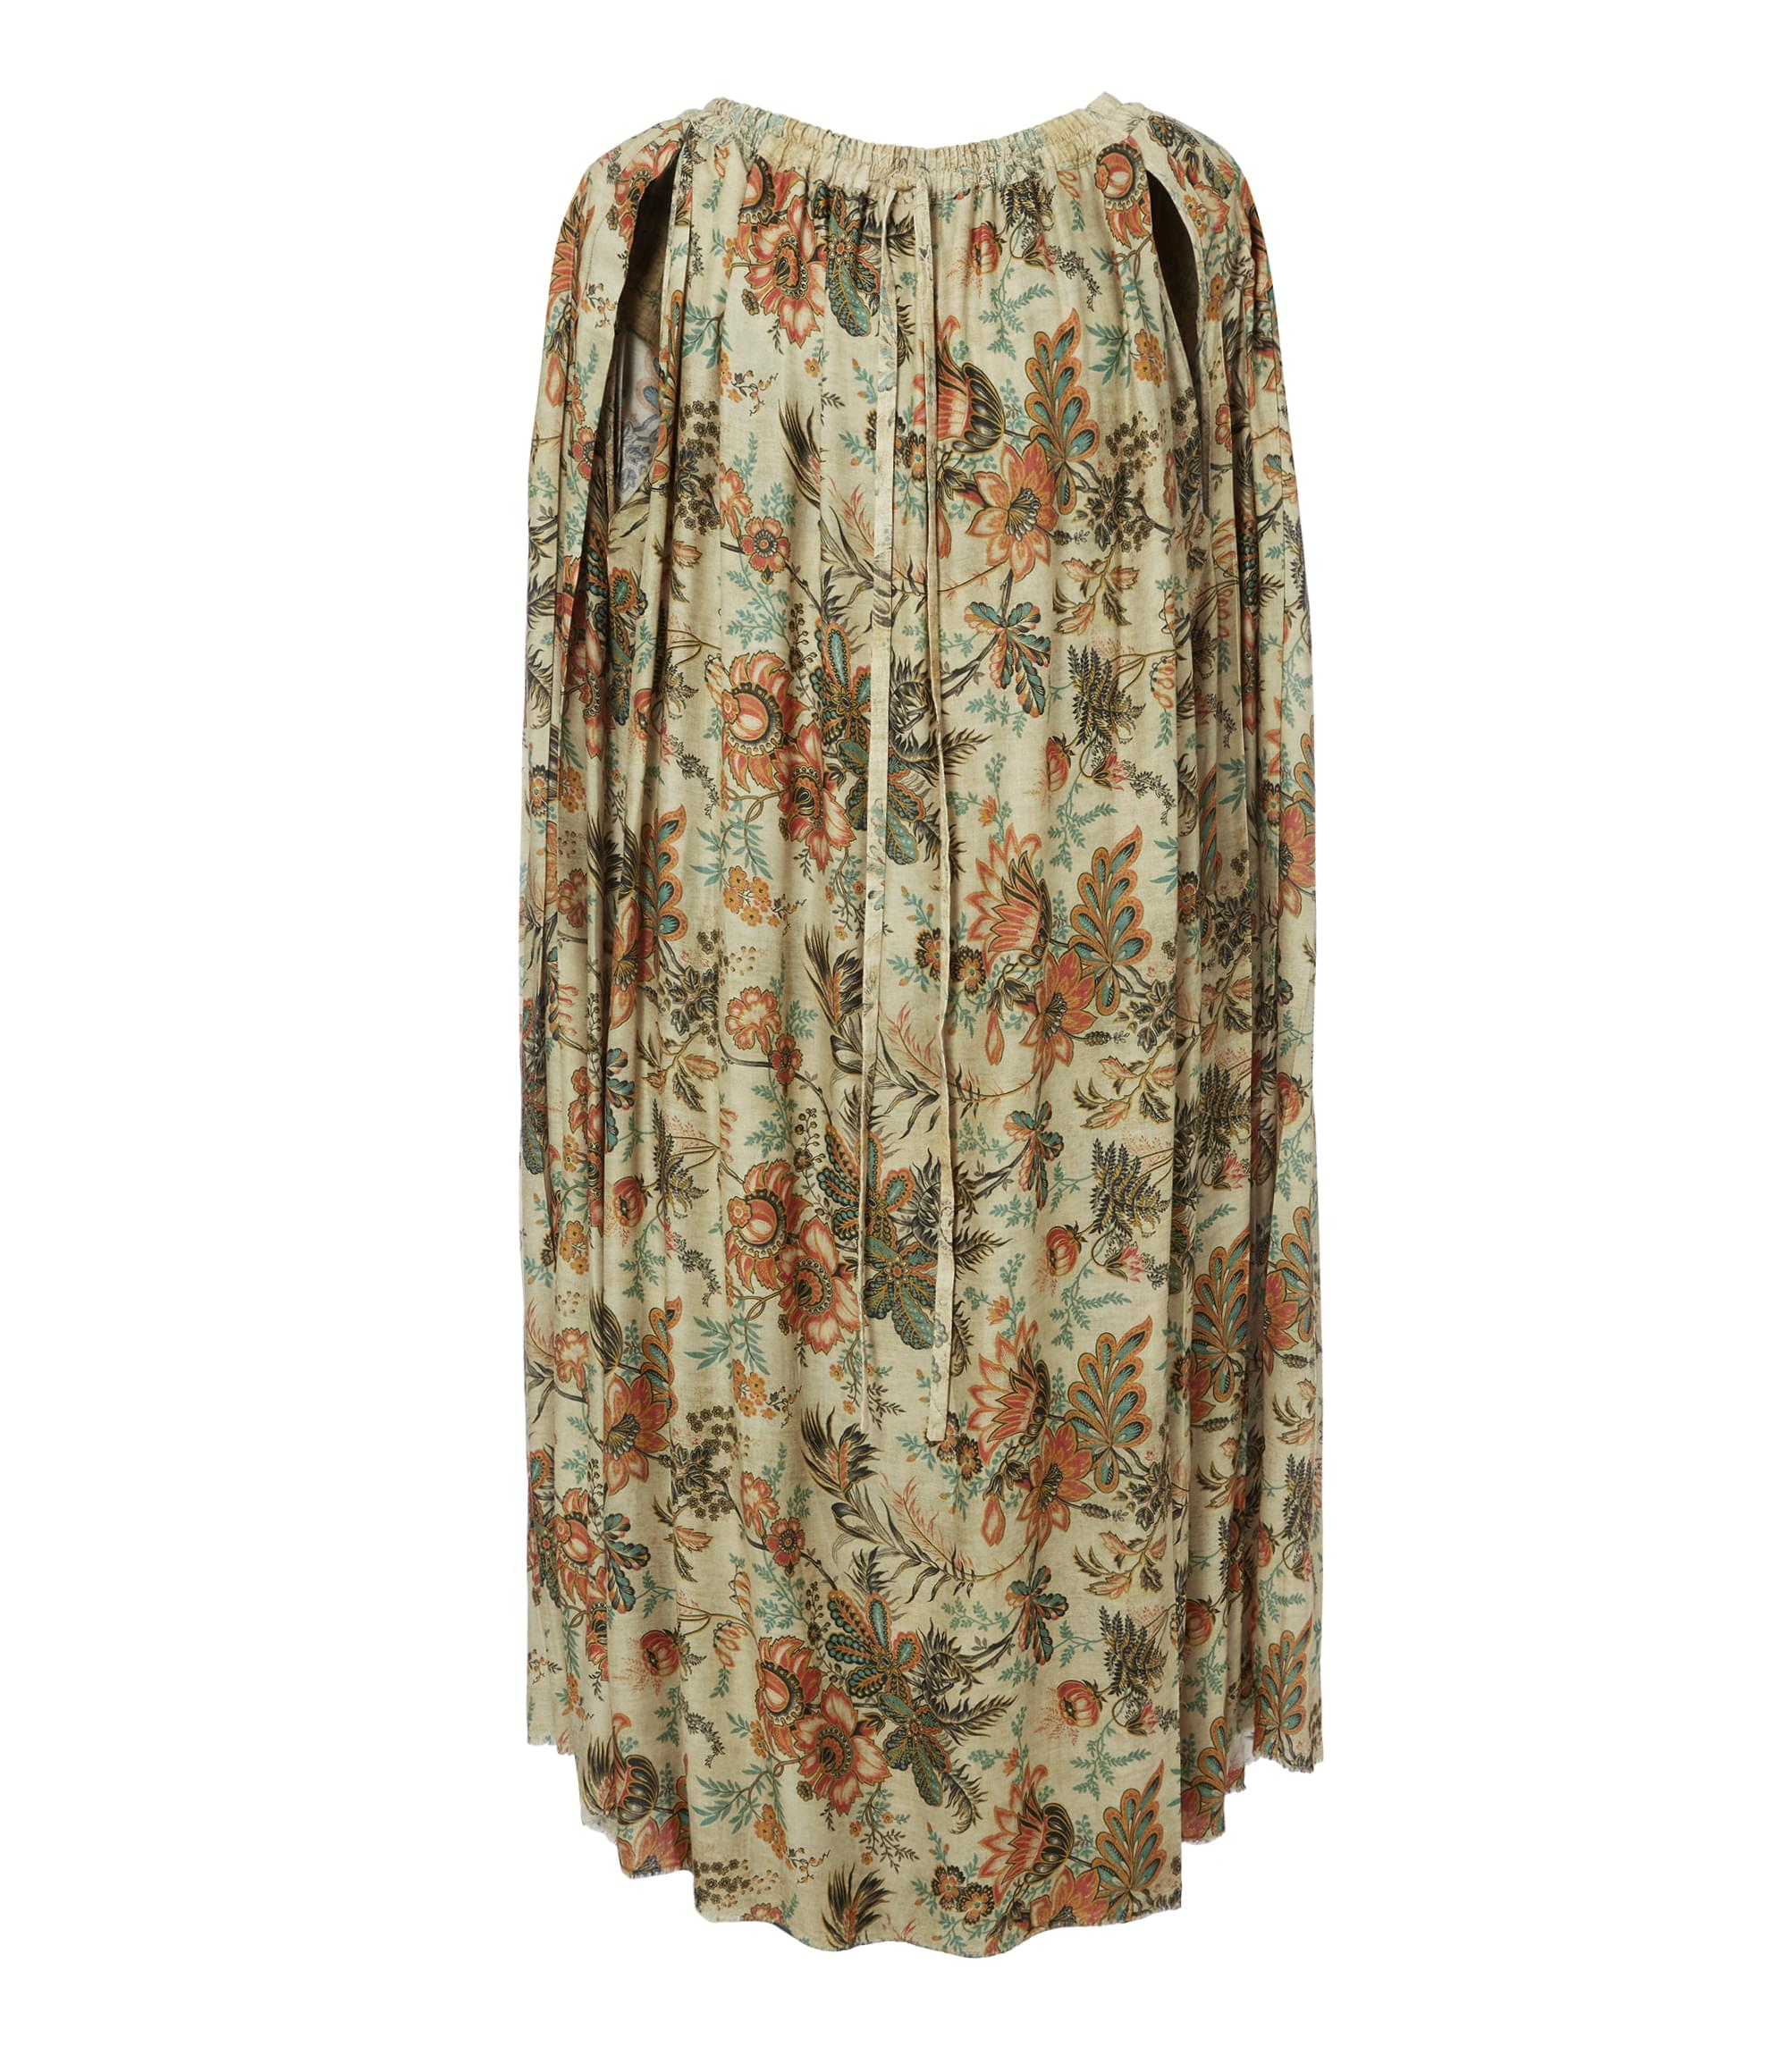 Vivienne Westwood Kilt Dress Beige Old Flowers